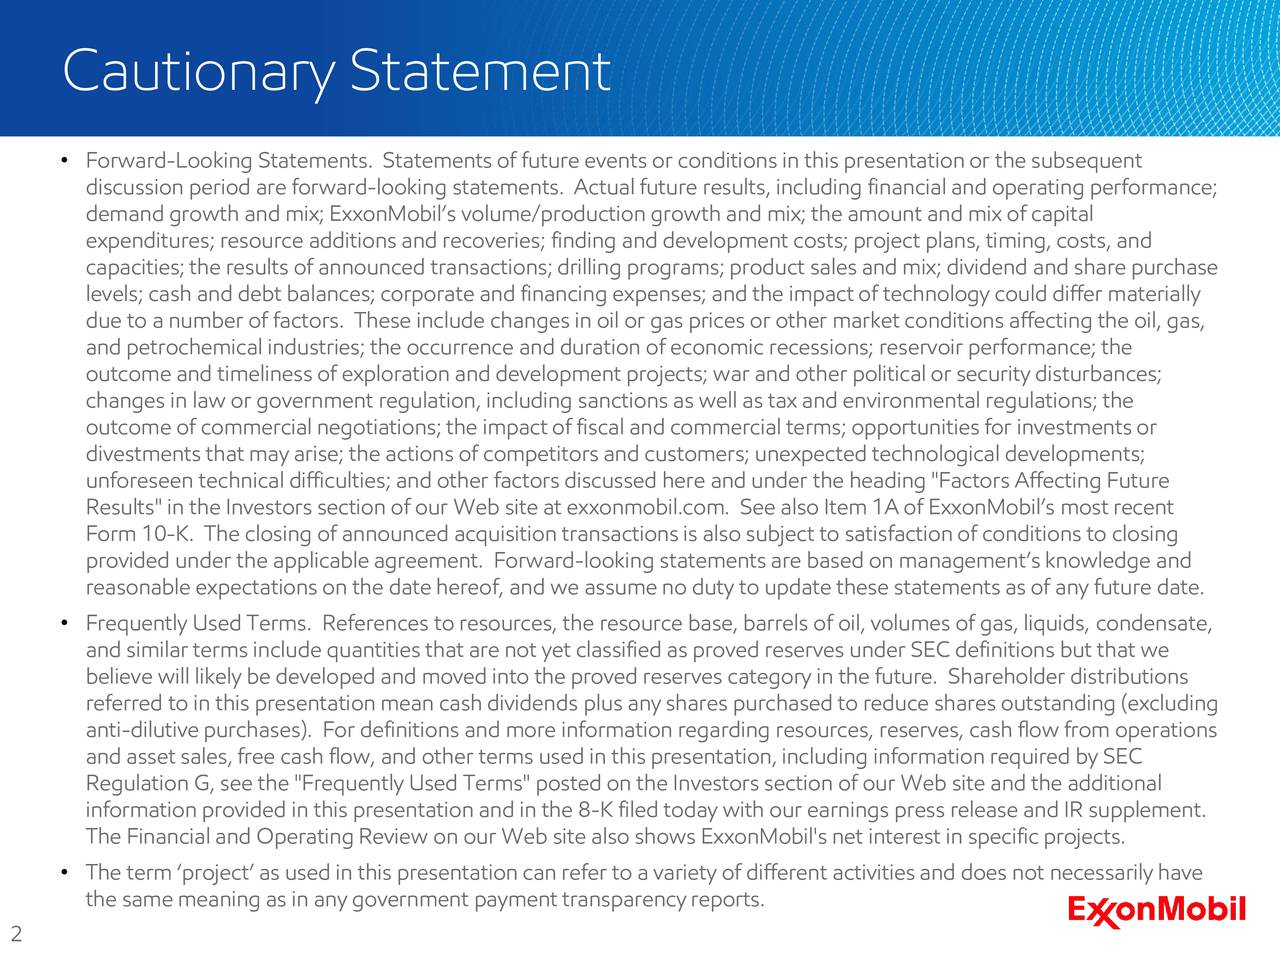 """Forward-Looking Statements. Statements of future events or conditions in this presentation or the subsequent discussion period are forward-looking statements. Actual future results, including financial and operating performance; demand growth and mix; ExxonMobils volume/production growth and mix; the amount and mix of capital expenditures; resource additions and recoveries; finding and development costs; project plans, timing, costs, and capacities; the results of announced transactions; drilling programs; product sales and mix; dividend and share purchase levels; cash and debt balances; corporate and financing expenses; and the impactof technology could differ materially due to a number of factors. These include changes in oil or gas prices or other market conditions affecting the oil, gas, and petrochemical industries; the occurrence and duration of economic recessions; reservoir performance; the outcome and timeliness of exploration and development projects; war and other political or security disturbances; changes in law or government regulation, including sanctions as well as tax and environmental regulations; the outcome of commercial negotiations; the impactof fiscal and commercial terms; opportunities for investments or divestments that may arise; the actions of competitors and customers; unexpected technological developments; unforeseen technical difficulties; and other factors discussed here and under the heading """"Factors Affecting Future Results"""" in the Investors section of our Web site at exxonmobil.com. See also Item 1A of ExxonMobils most recent Form 10-K. The closing of announced acquisition transactions is also subject to satisfaction of conditions to closing provided under the applicable agreement. Forward-looking statementsare based on managements knowledge and reasonable expectations on the date hereof, and we assume no duty to update these statements as of any future date. Frequently Used Terms. References to resources, the resource base, barrels"""